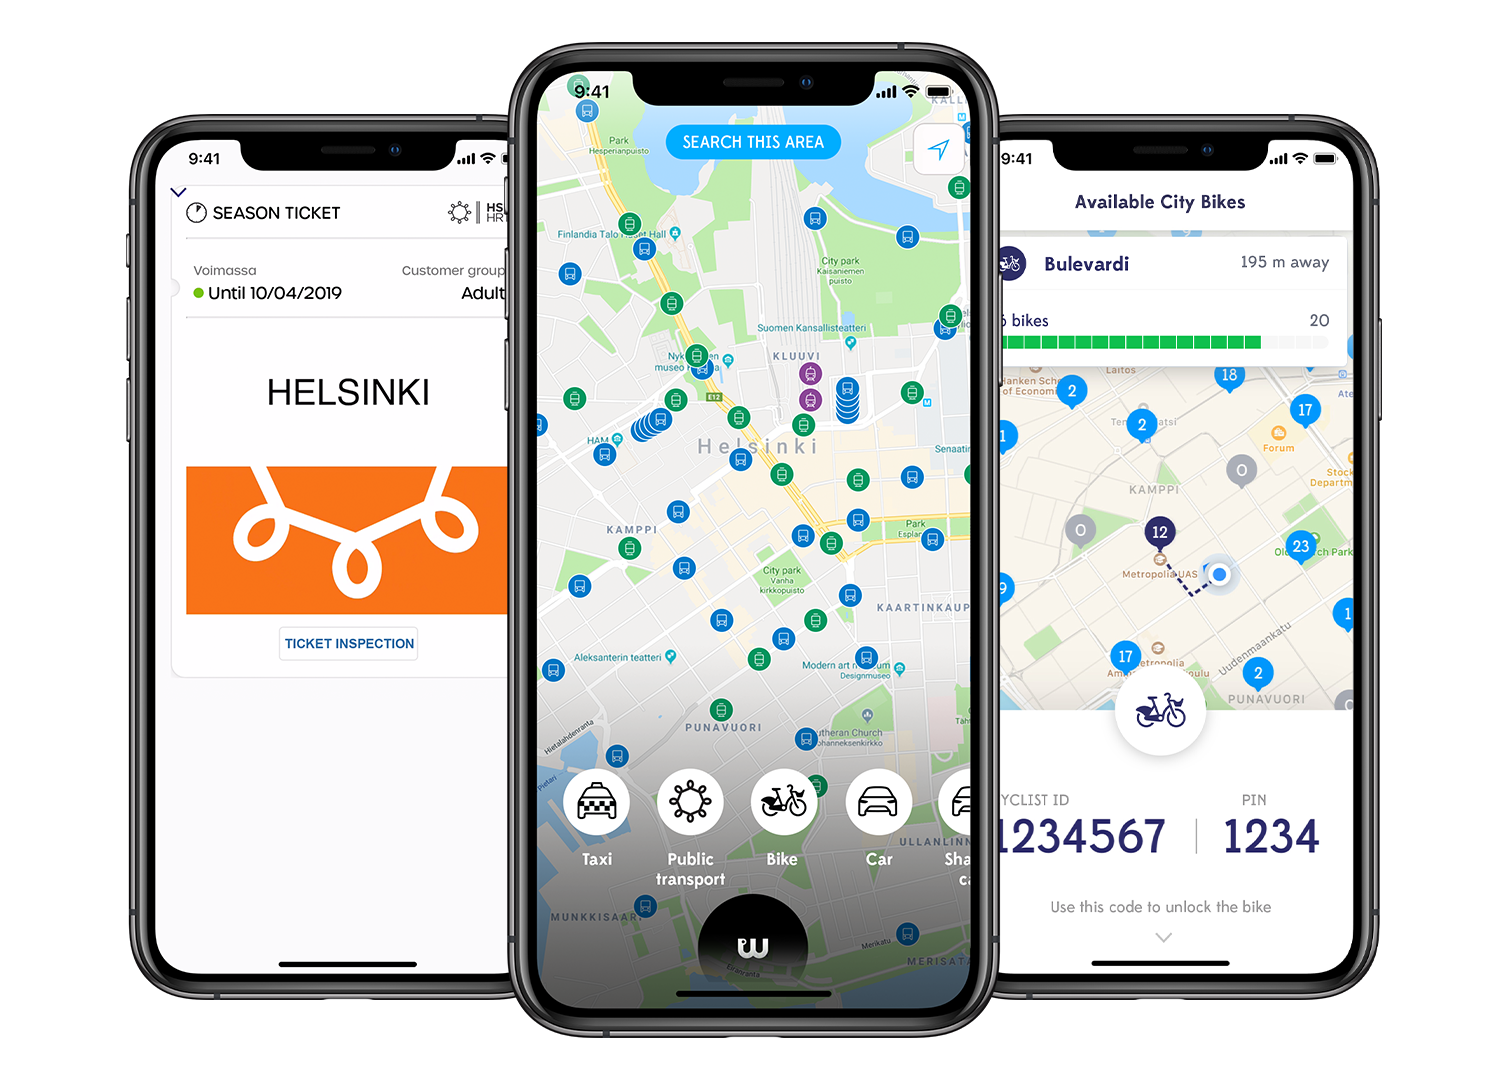 Whim - All your journeys with bus, tram, taxi, car, bike and more in